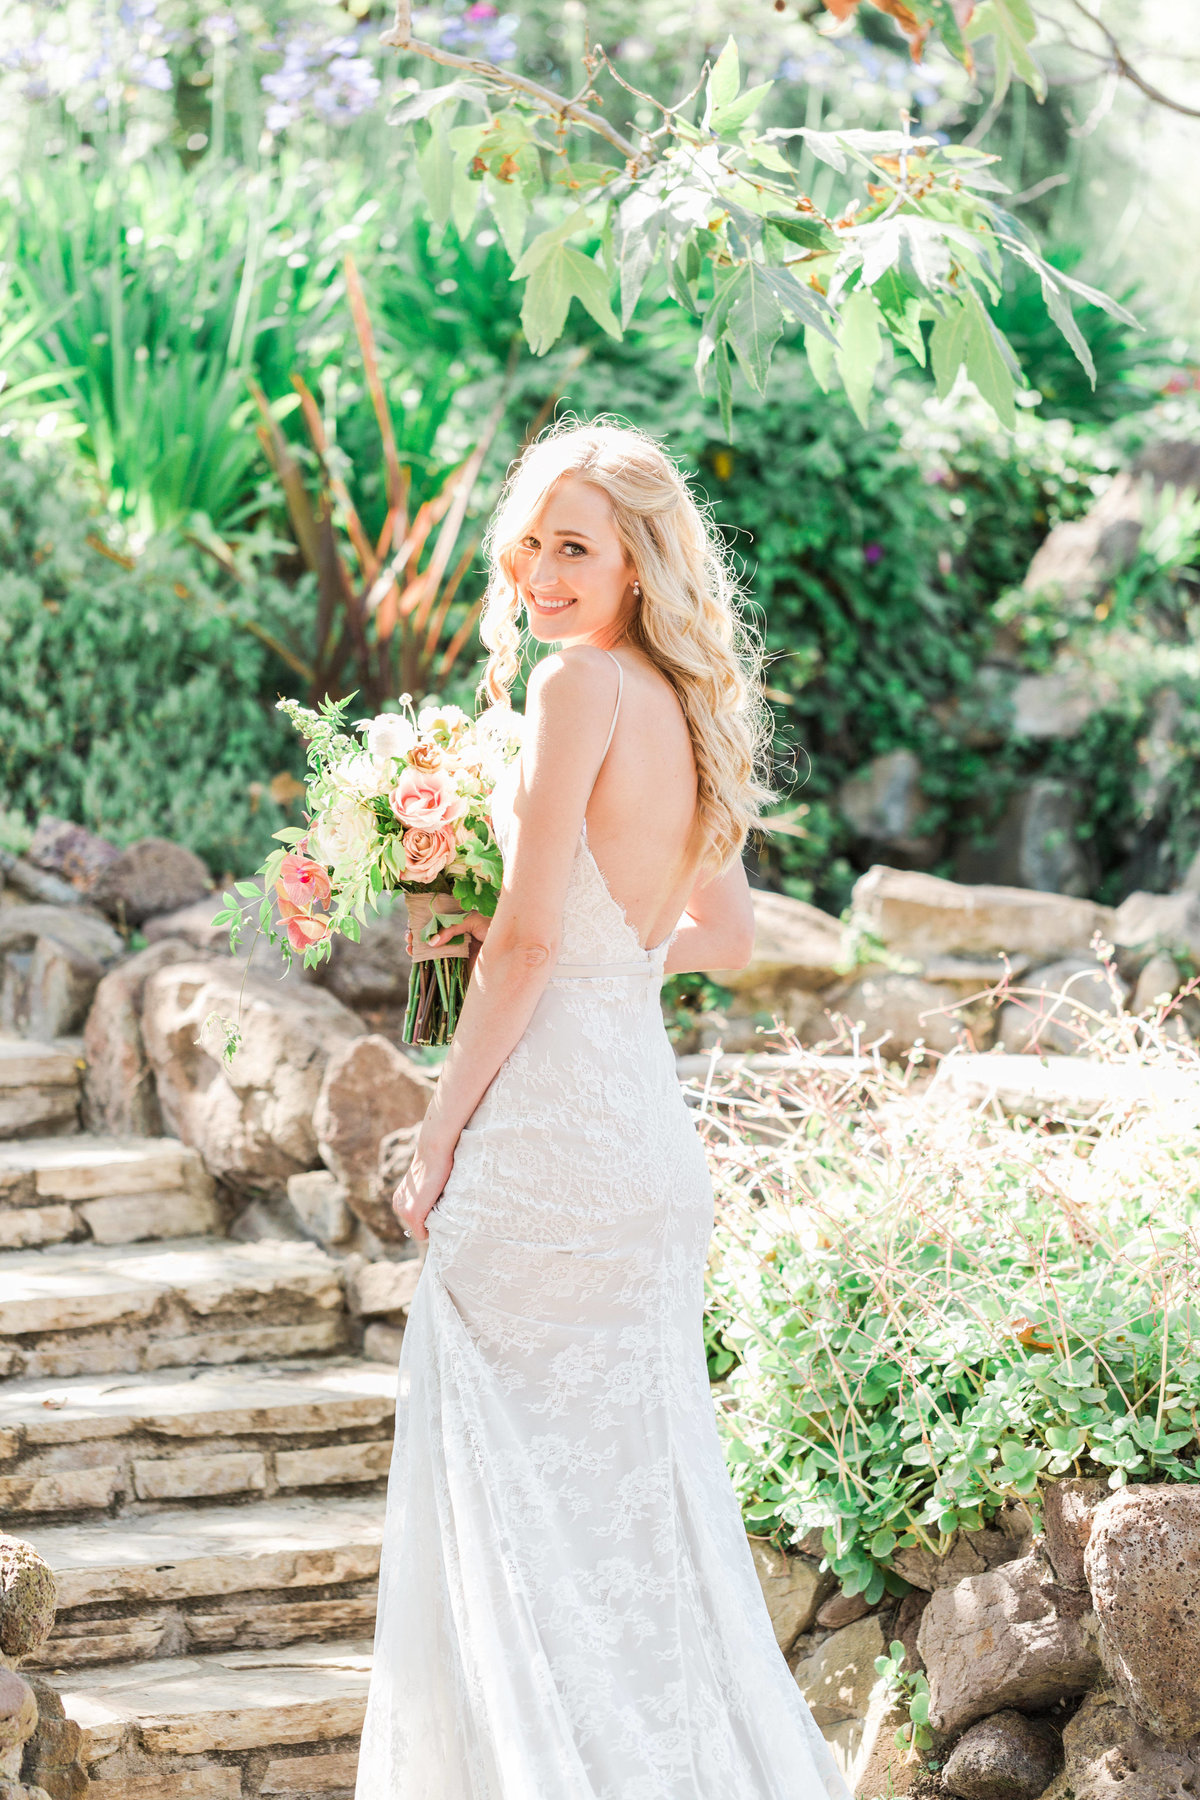 Quail_Ranch_Blush_California_Wedding_Valorie_Darling_Photography - 53 of 151